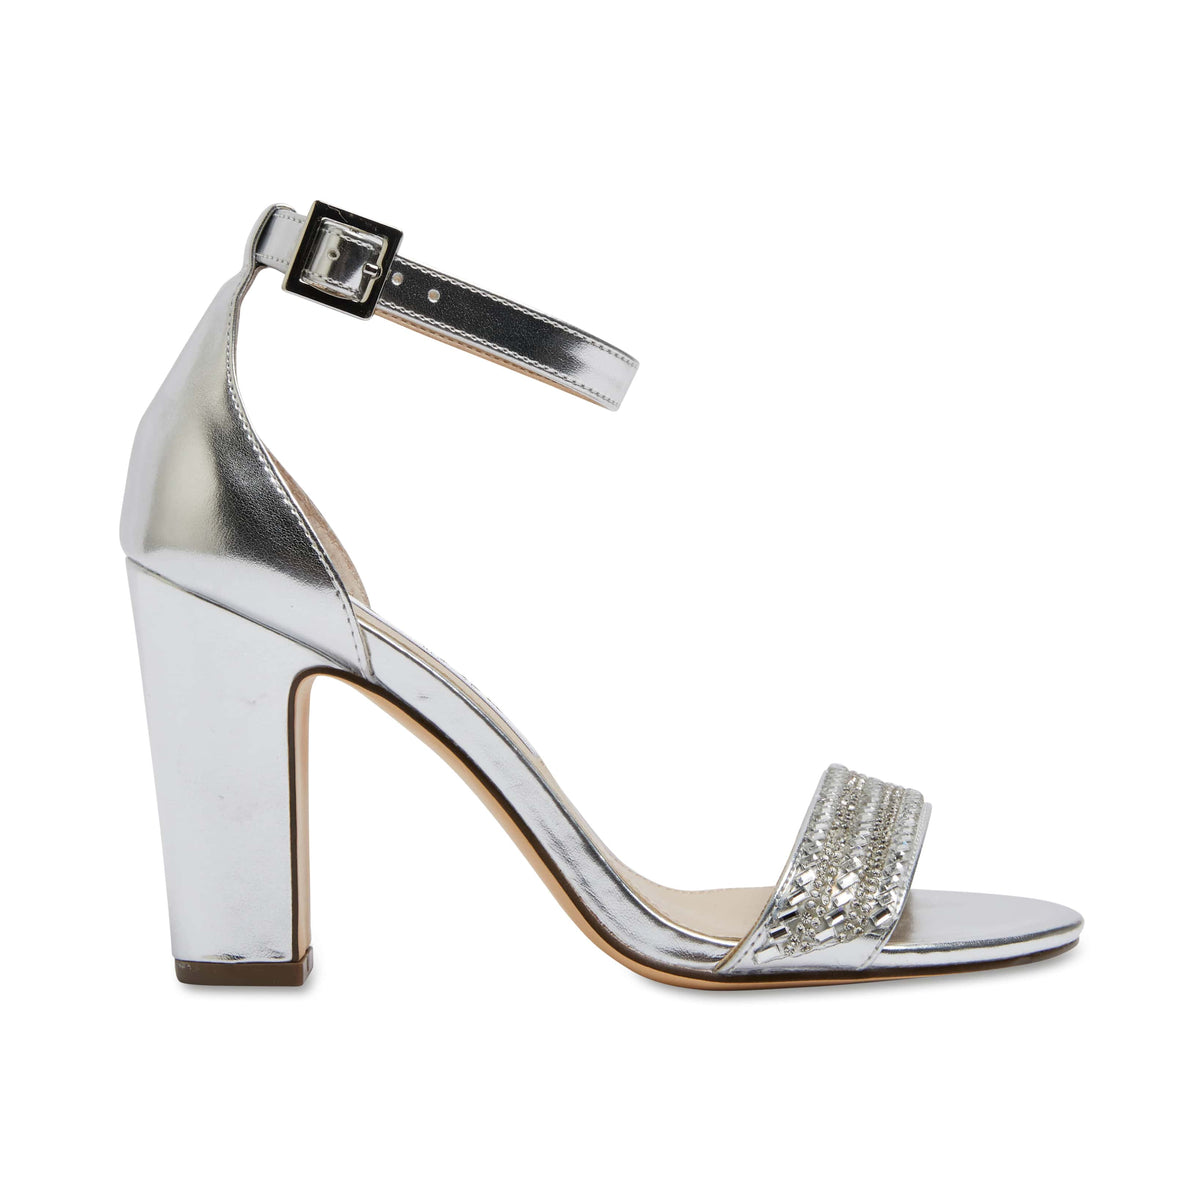 Suzette Heel in Silver Satin